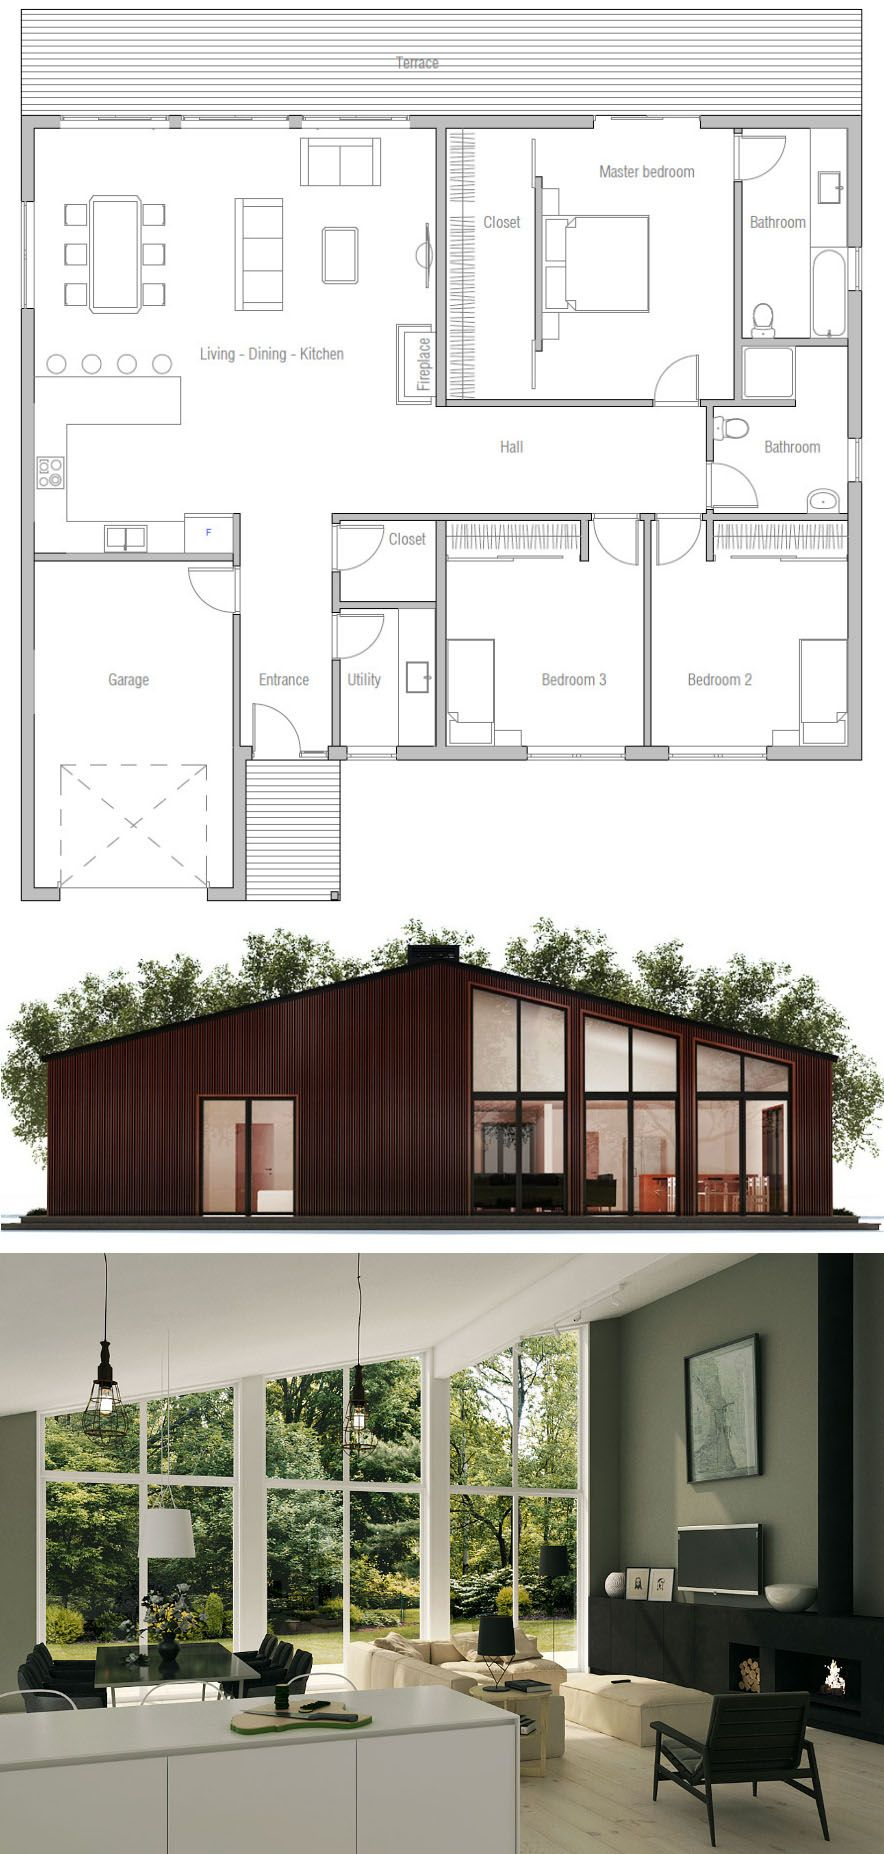 Shipping Container Homes, Container Houses, Container Homes. Maison Plain  Pied, Maison Bois